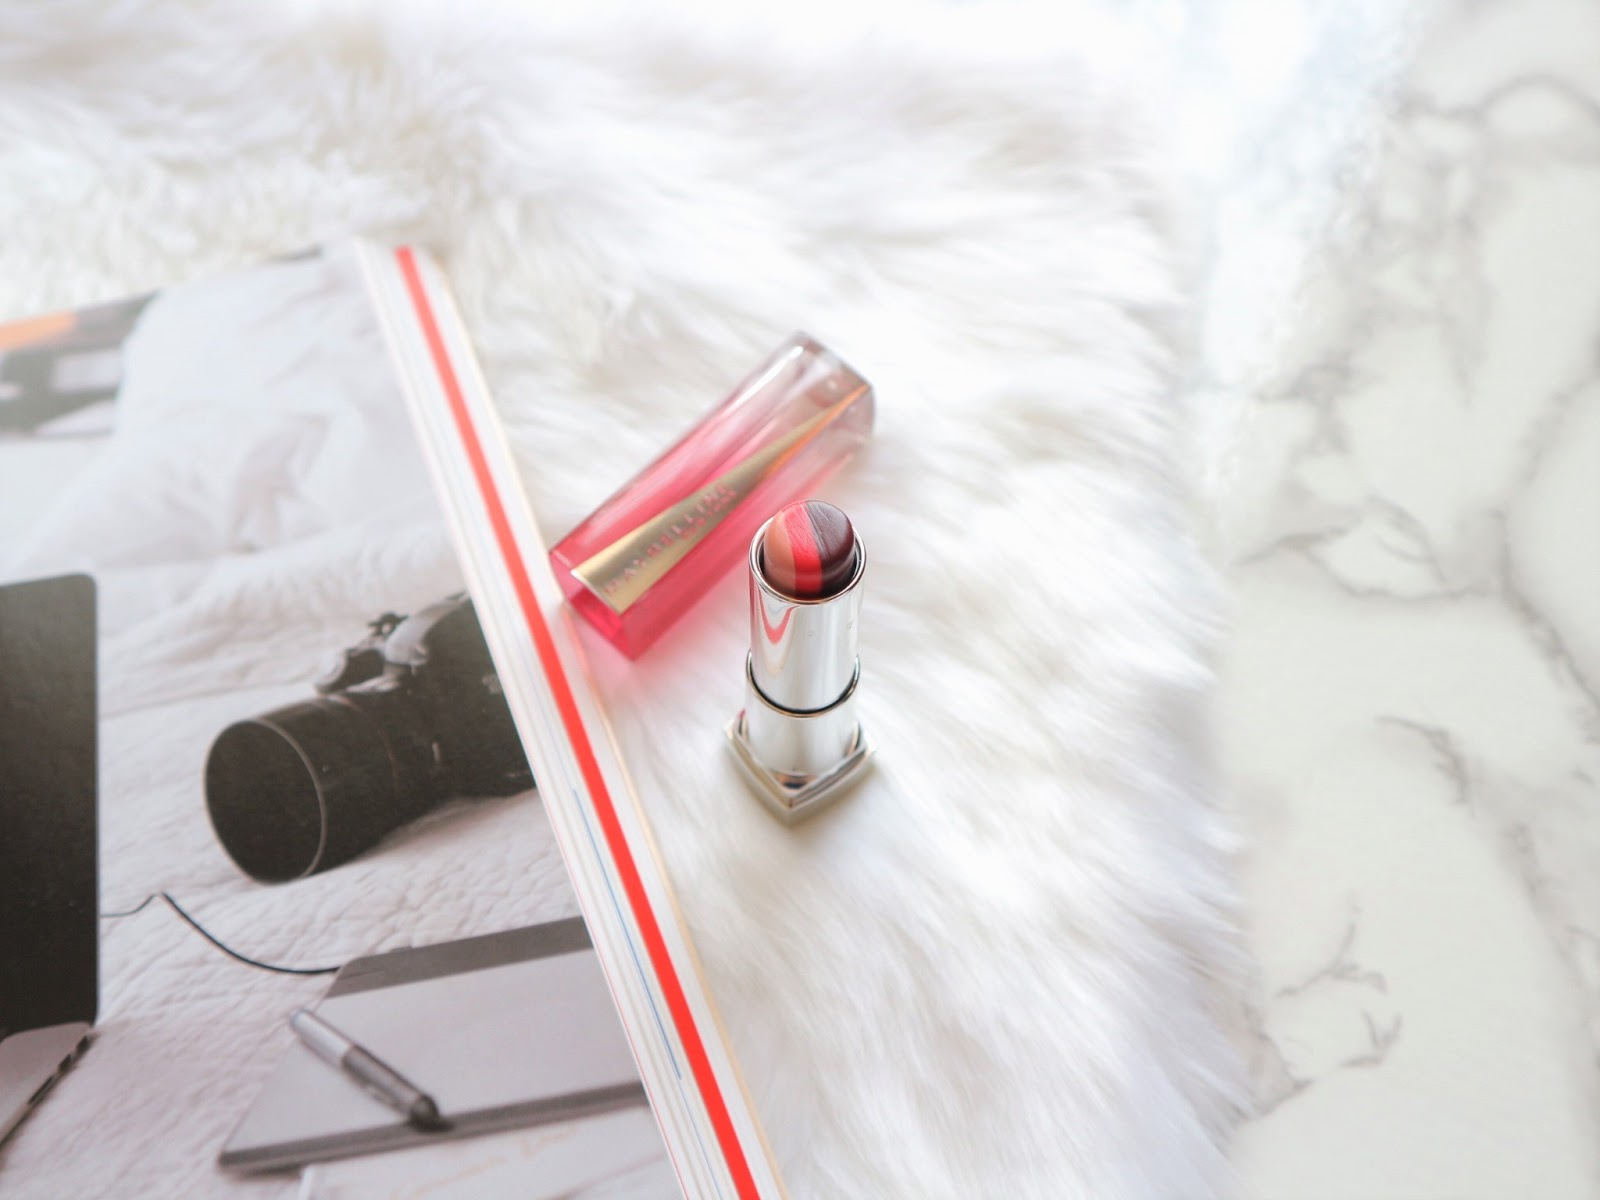 Maybelline RD03 Lipstick Review Swatch